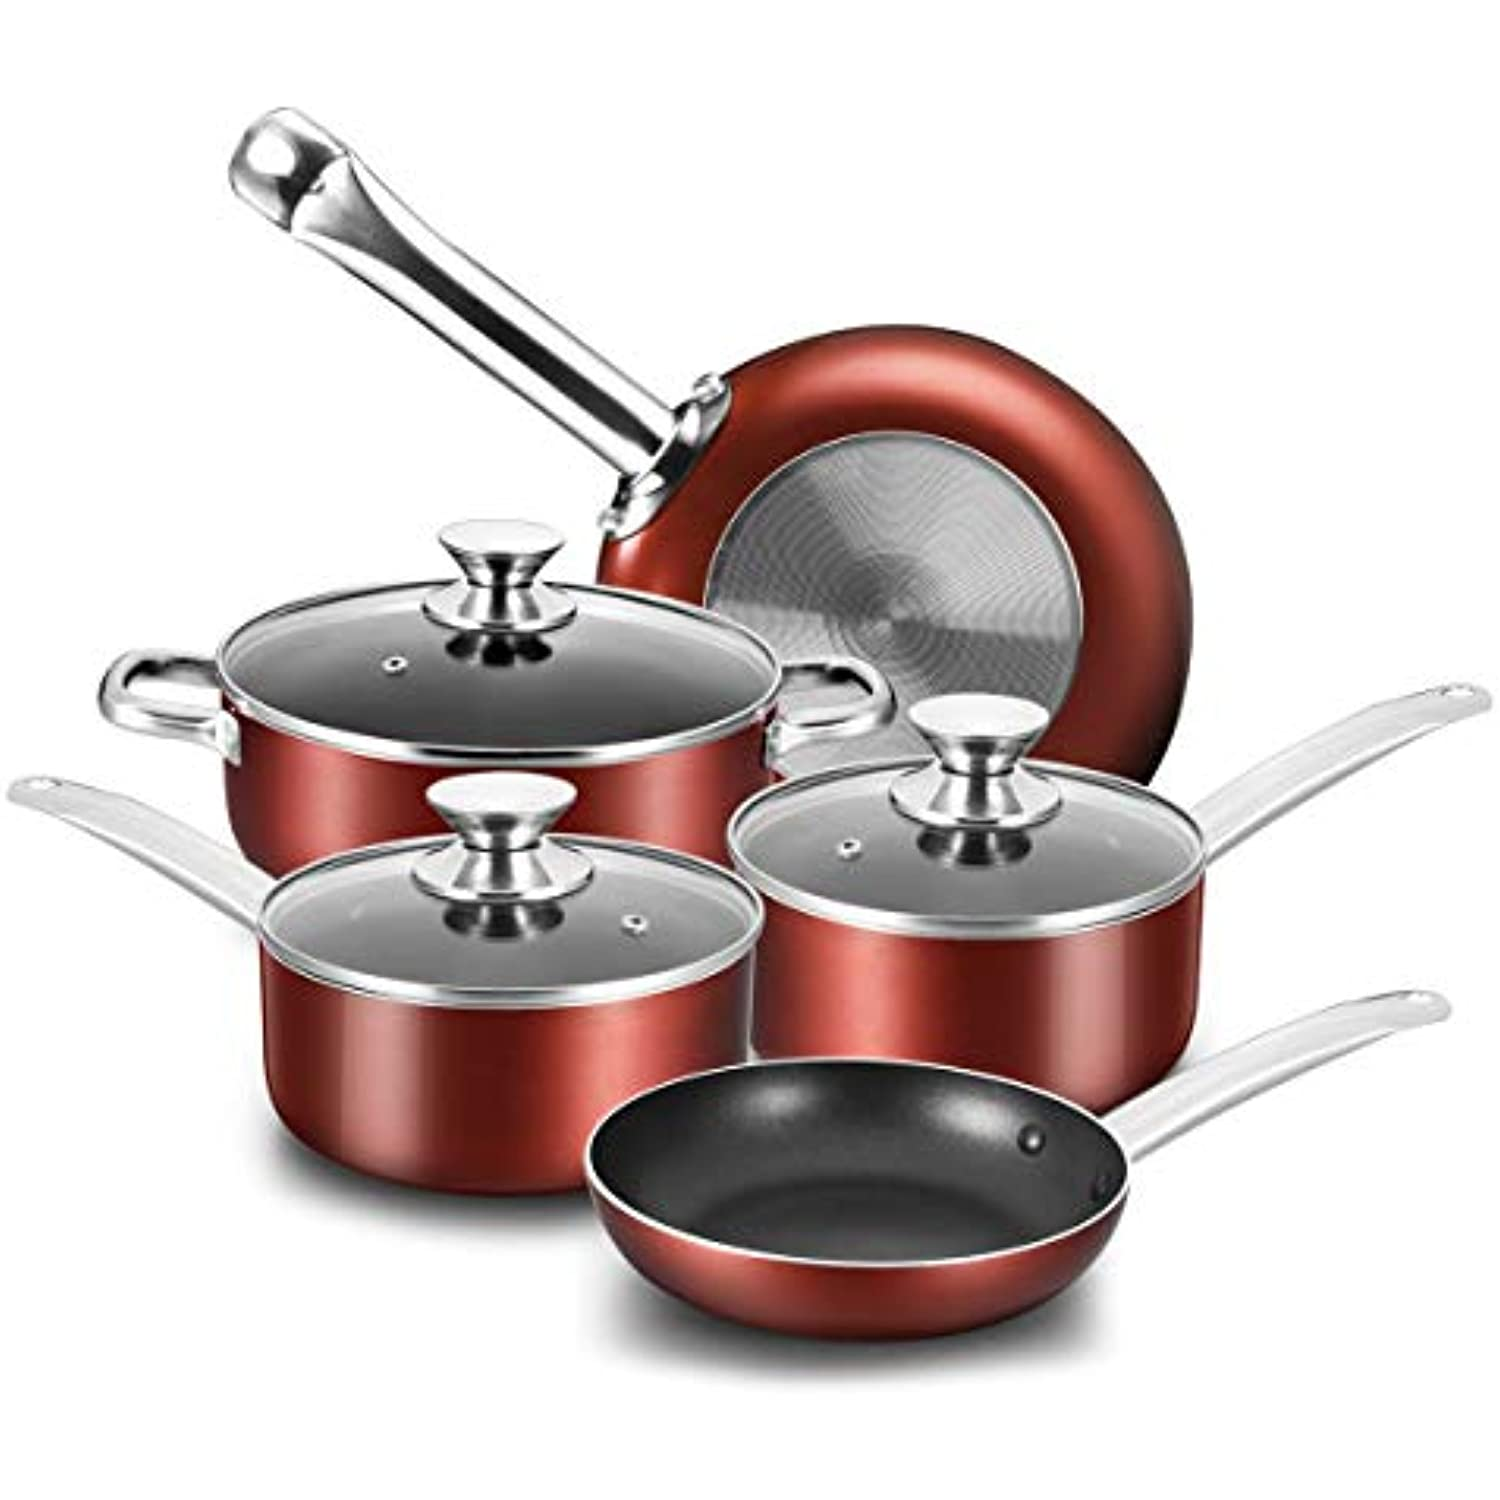 COOKER KING Nonstick Cookware Set, 8-Piece Nonstick Pots and Pans Set with Glass Lids, Baking Sets, Cooking Pots Set, Oven Safe, Red